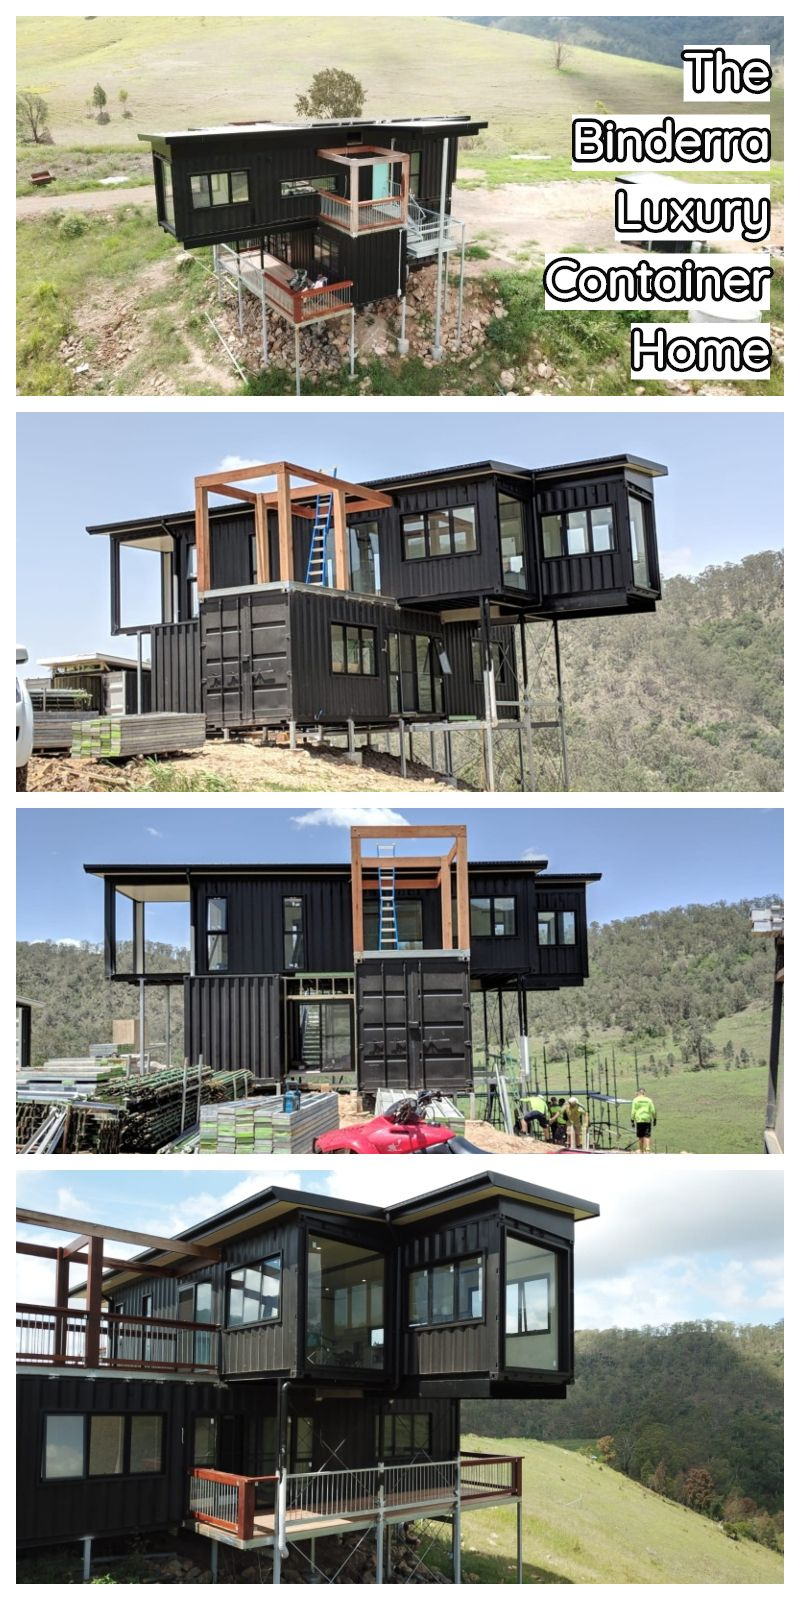 The Binderra Luxury Container Home In 2020 Container House Container House Plans Container House Design